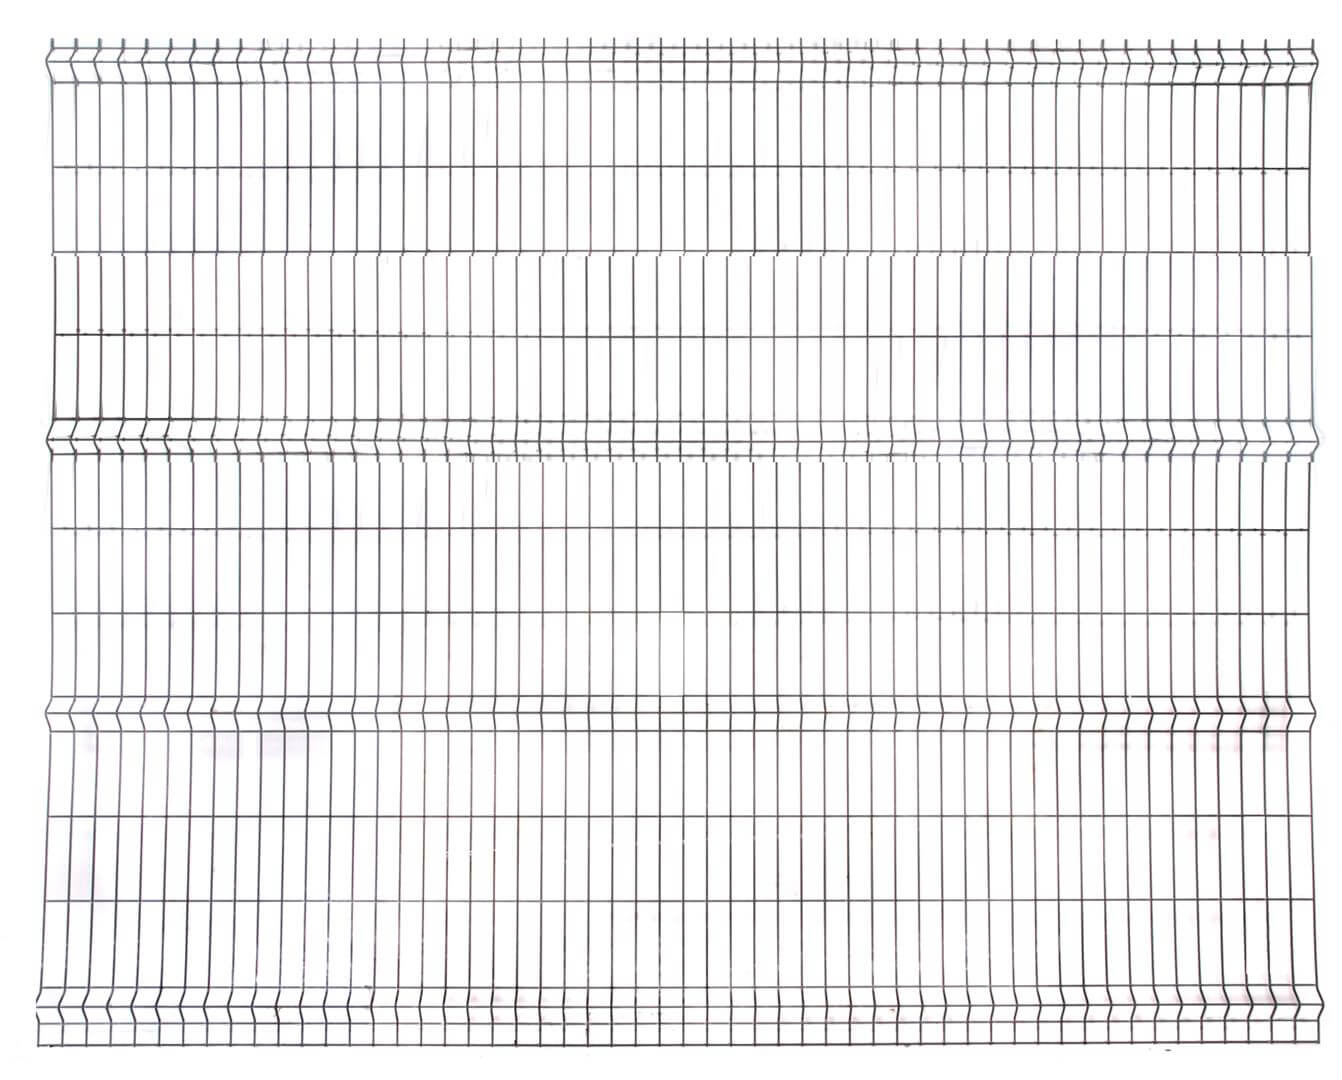 EuroGuard Regular Mesh Security Panel 2.4m